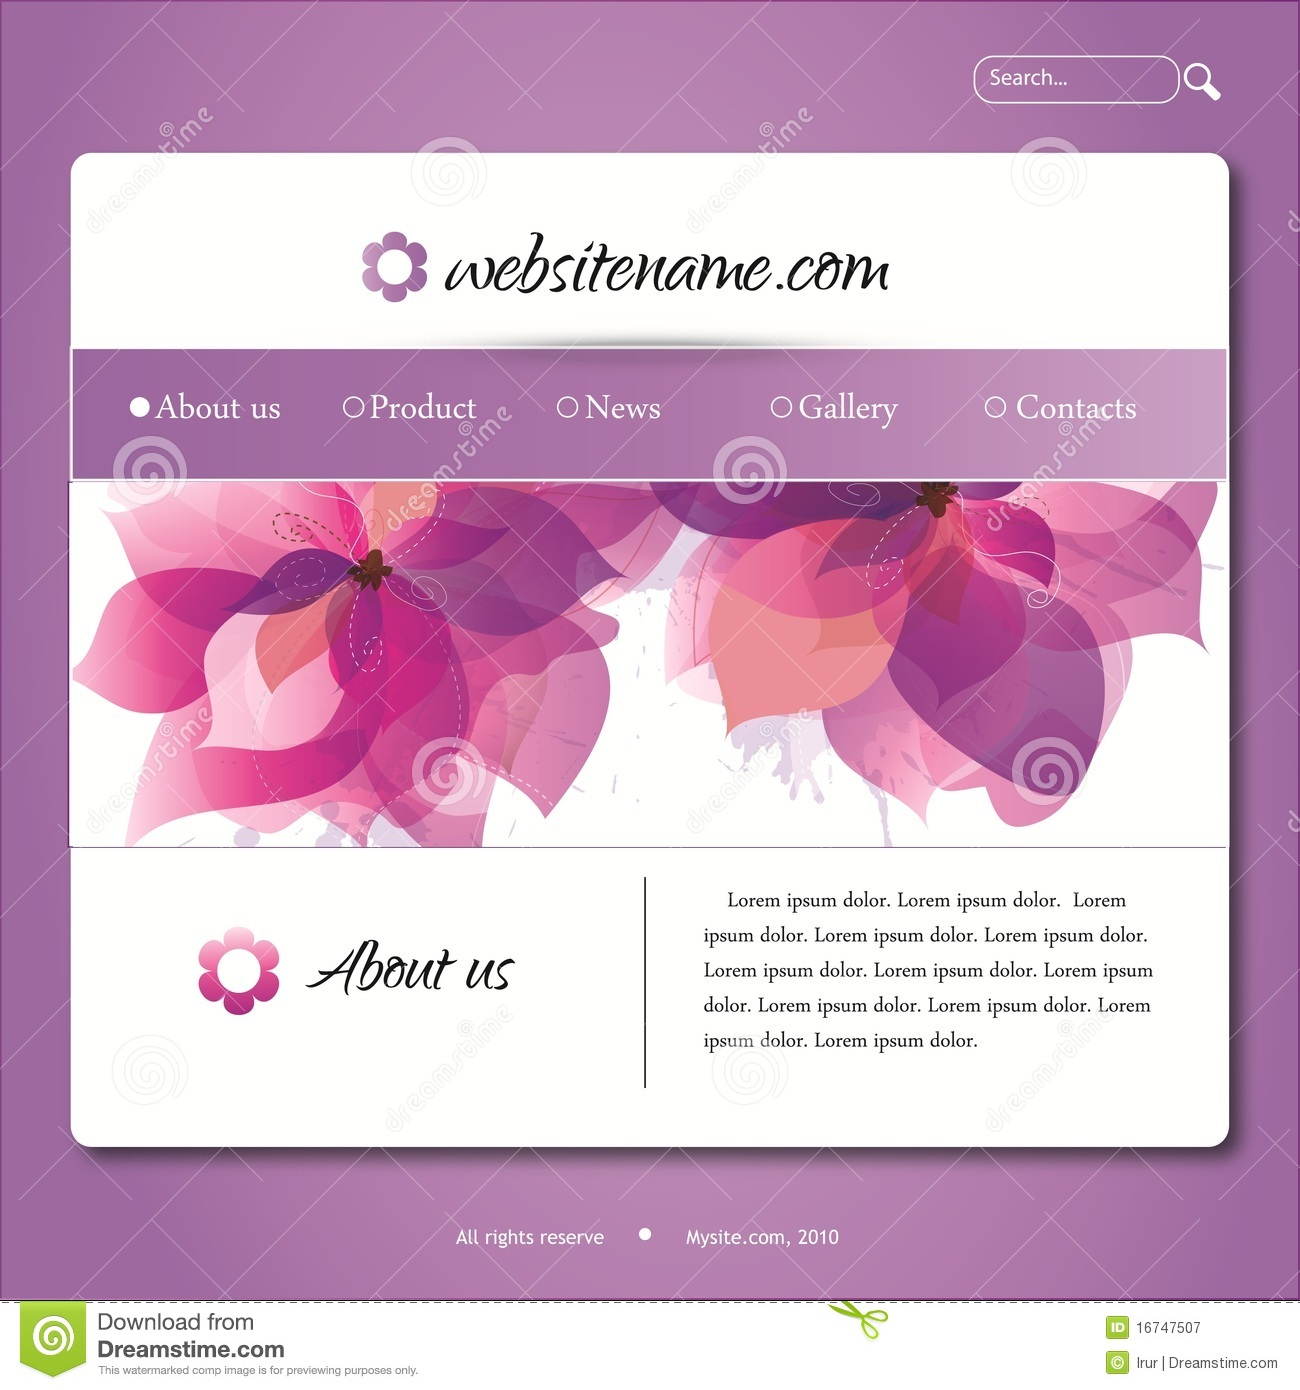 vector-violet-web-site-design-template-16747507.jpg